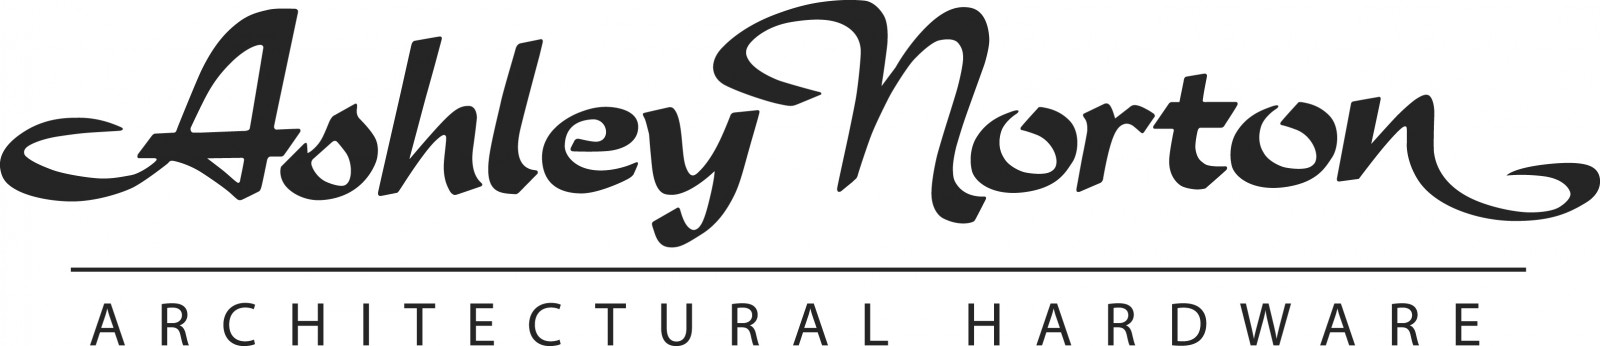 Ashley Norton Logo